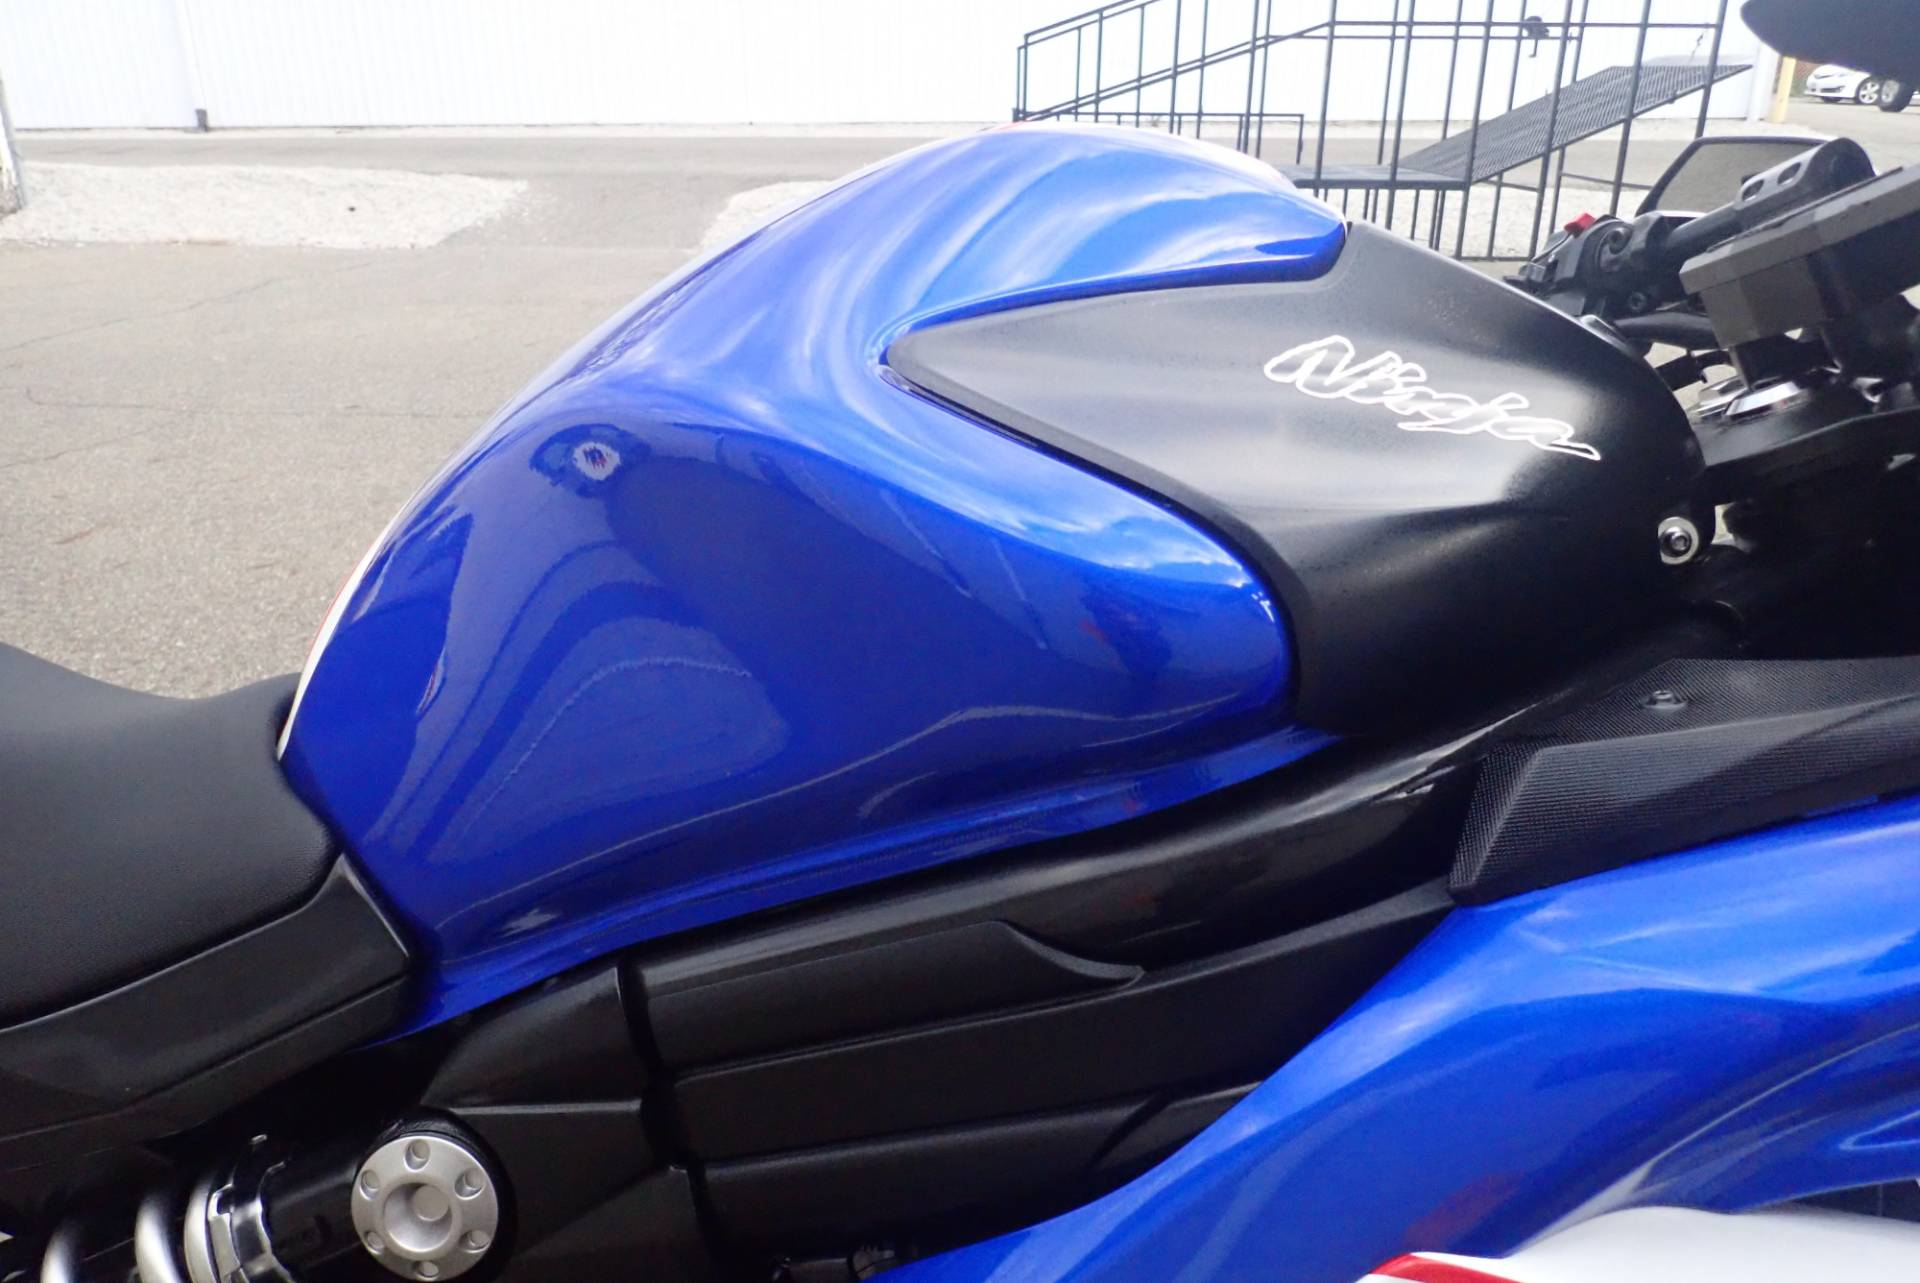 2013 Kawasaki Ninja® 650 in Massillon, Ohio - Photo 4